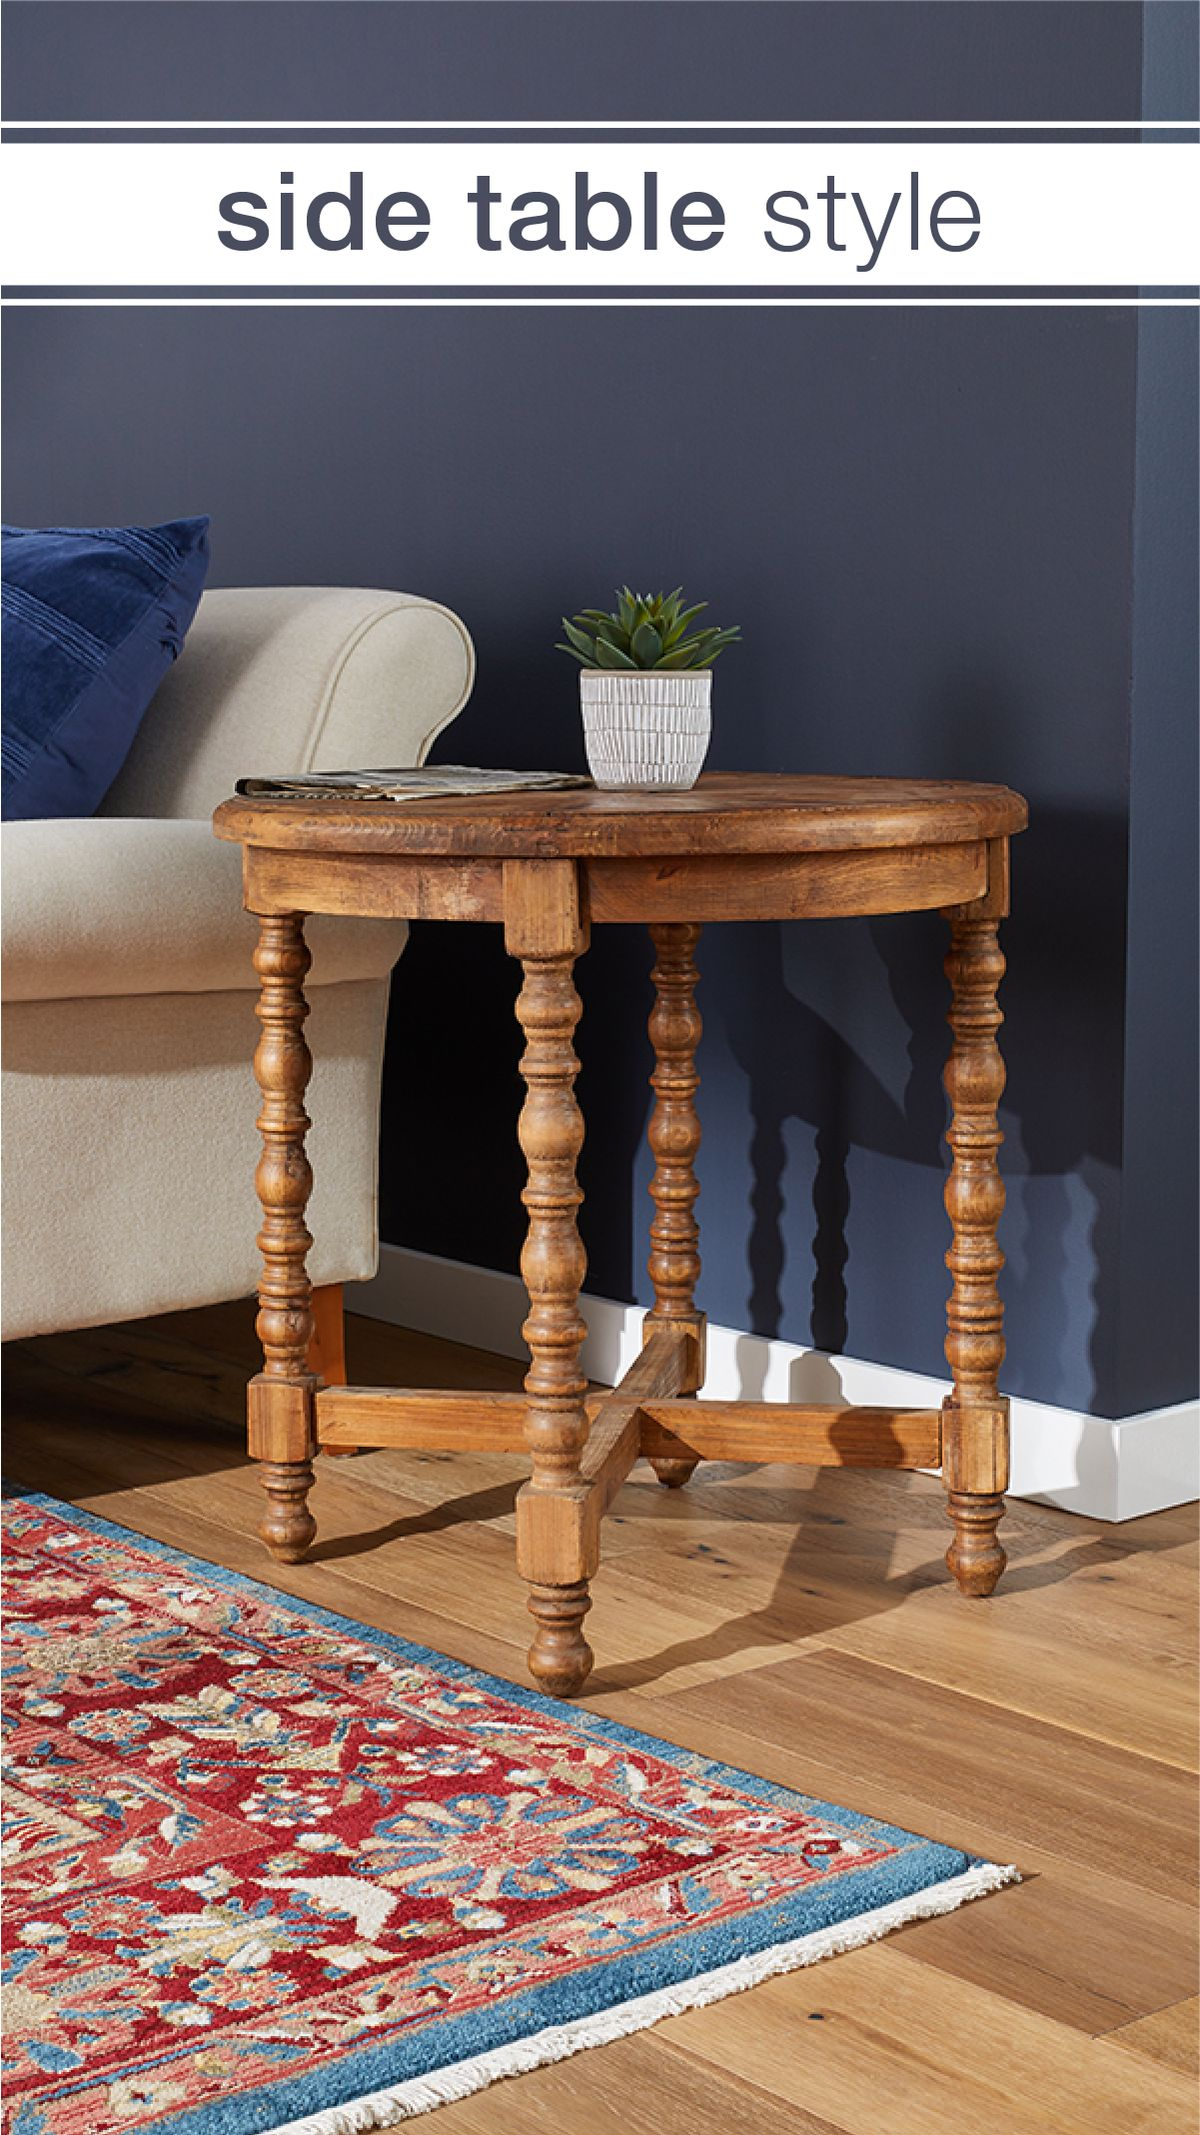 Save big on beautiful end tables at Overstock, where you'll pay less for high quality home goods! #endtables #livingroom #furniture #home #homegoods #homefurniture #livingroomtables #livingroomfurniture #furnishings #overstock #woodentables #stylishtables #cozyhome #traditionaldesign #traditionalhome #homedecor #accentdecor #livingroomaccents